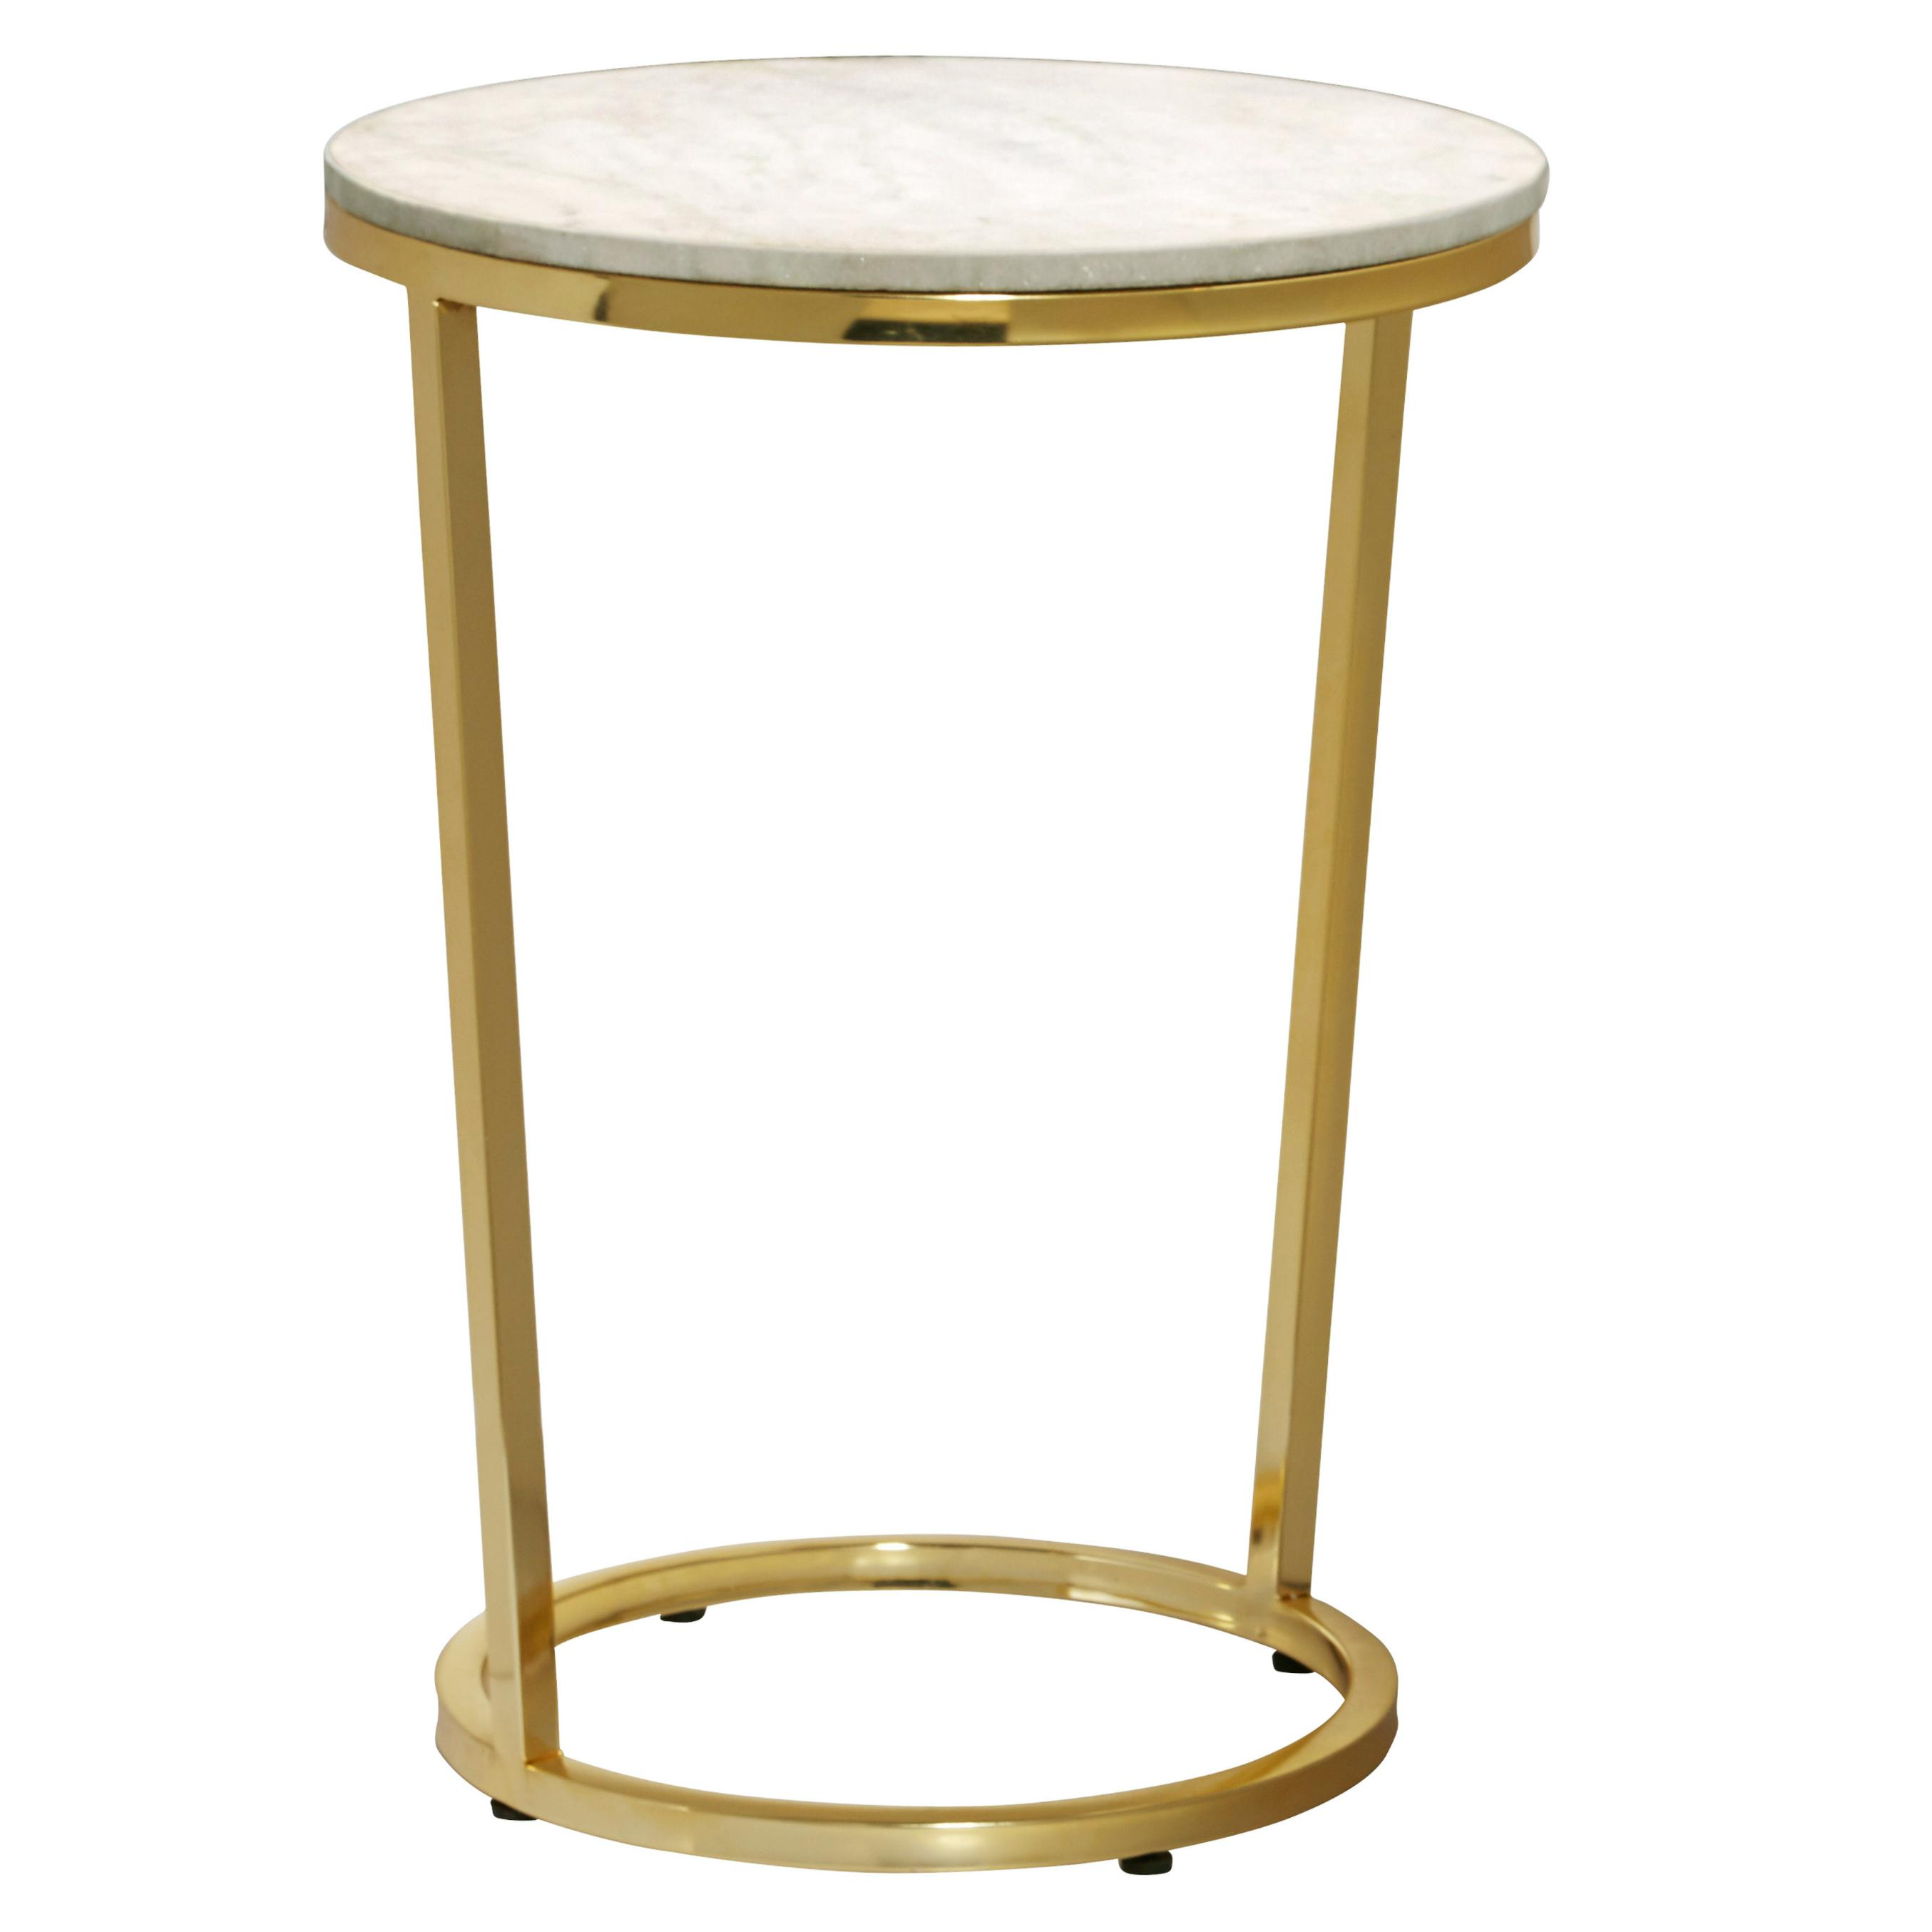 pulaski emory marble top round accent table with steel furniture legs dorm room decor shabby chic wine rack cabinet garden and chairs half moon entry bedside tray high corner